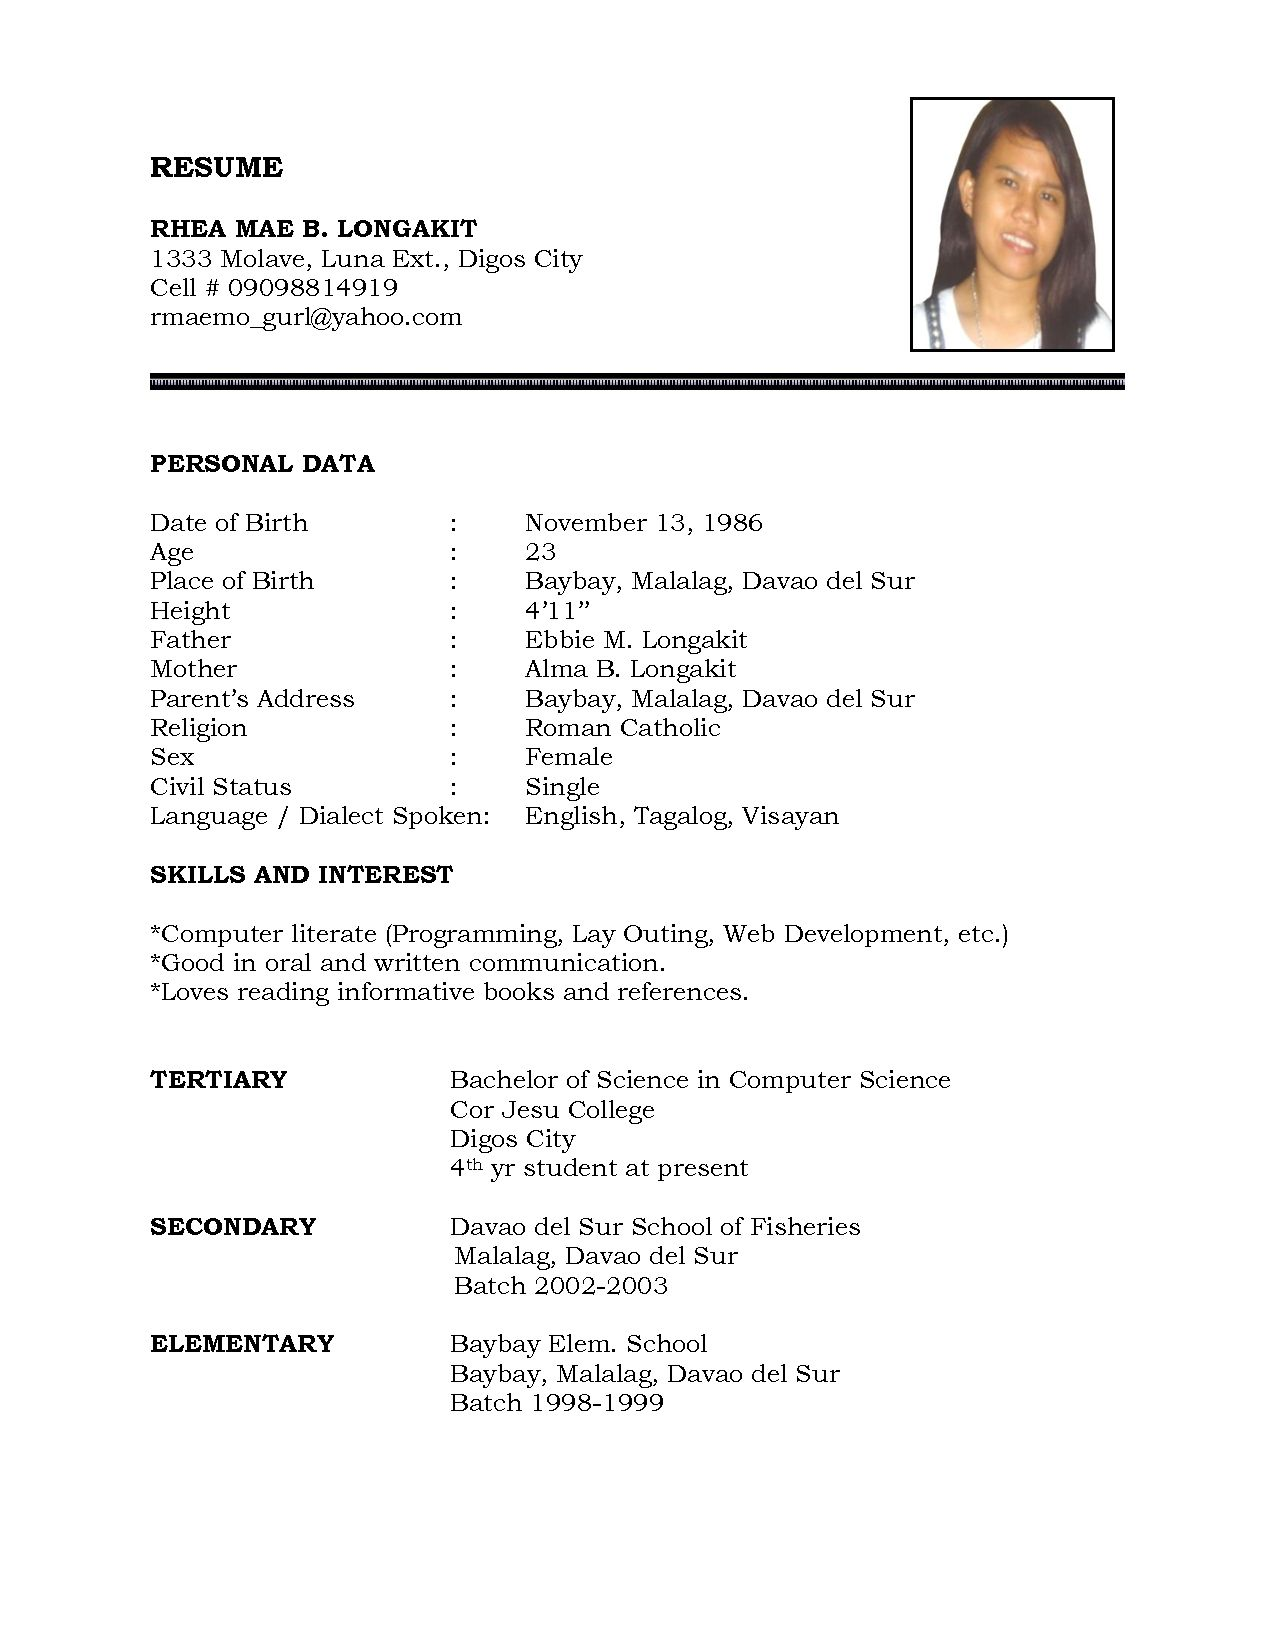 Simple Sample Resume Resume Sample Simple De9E2A60F The Simple Format Of Resume For Job